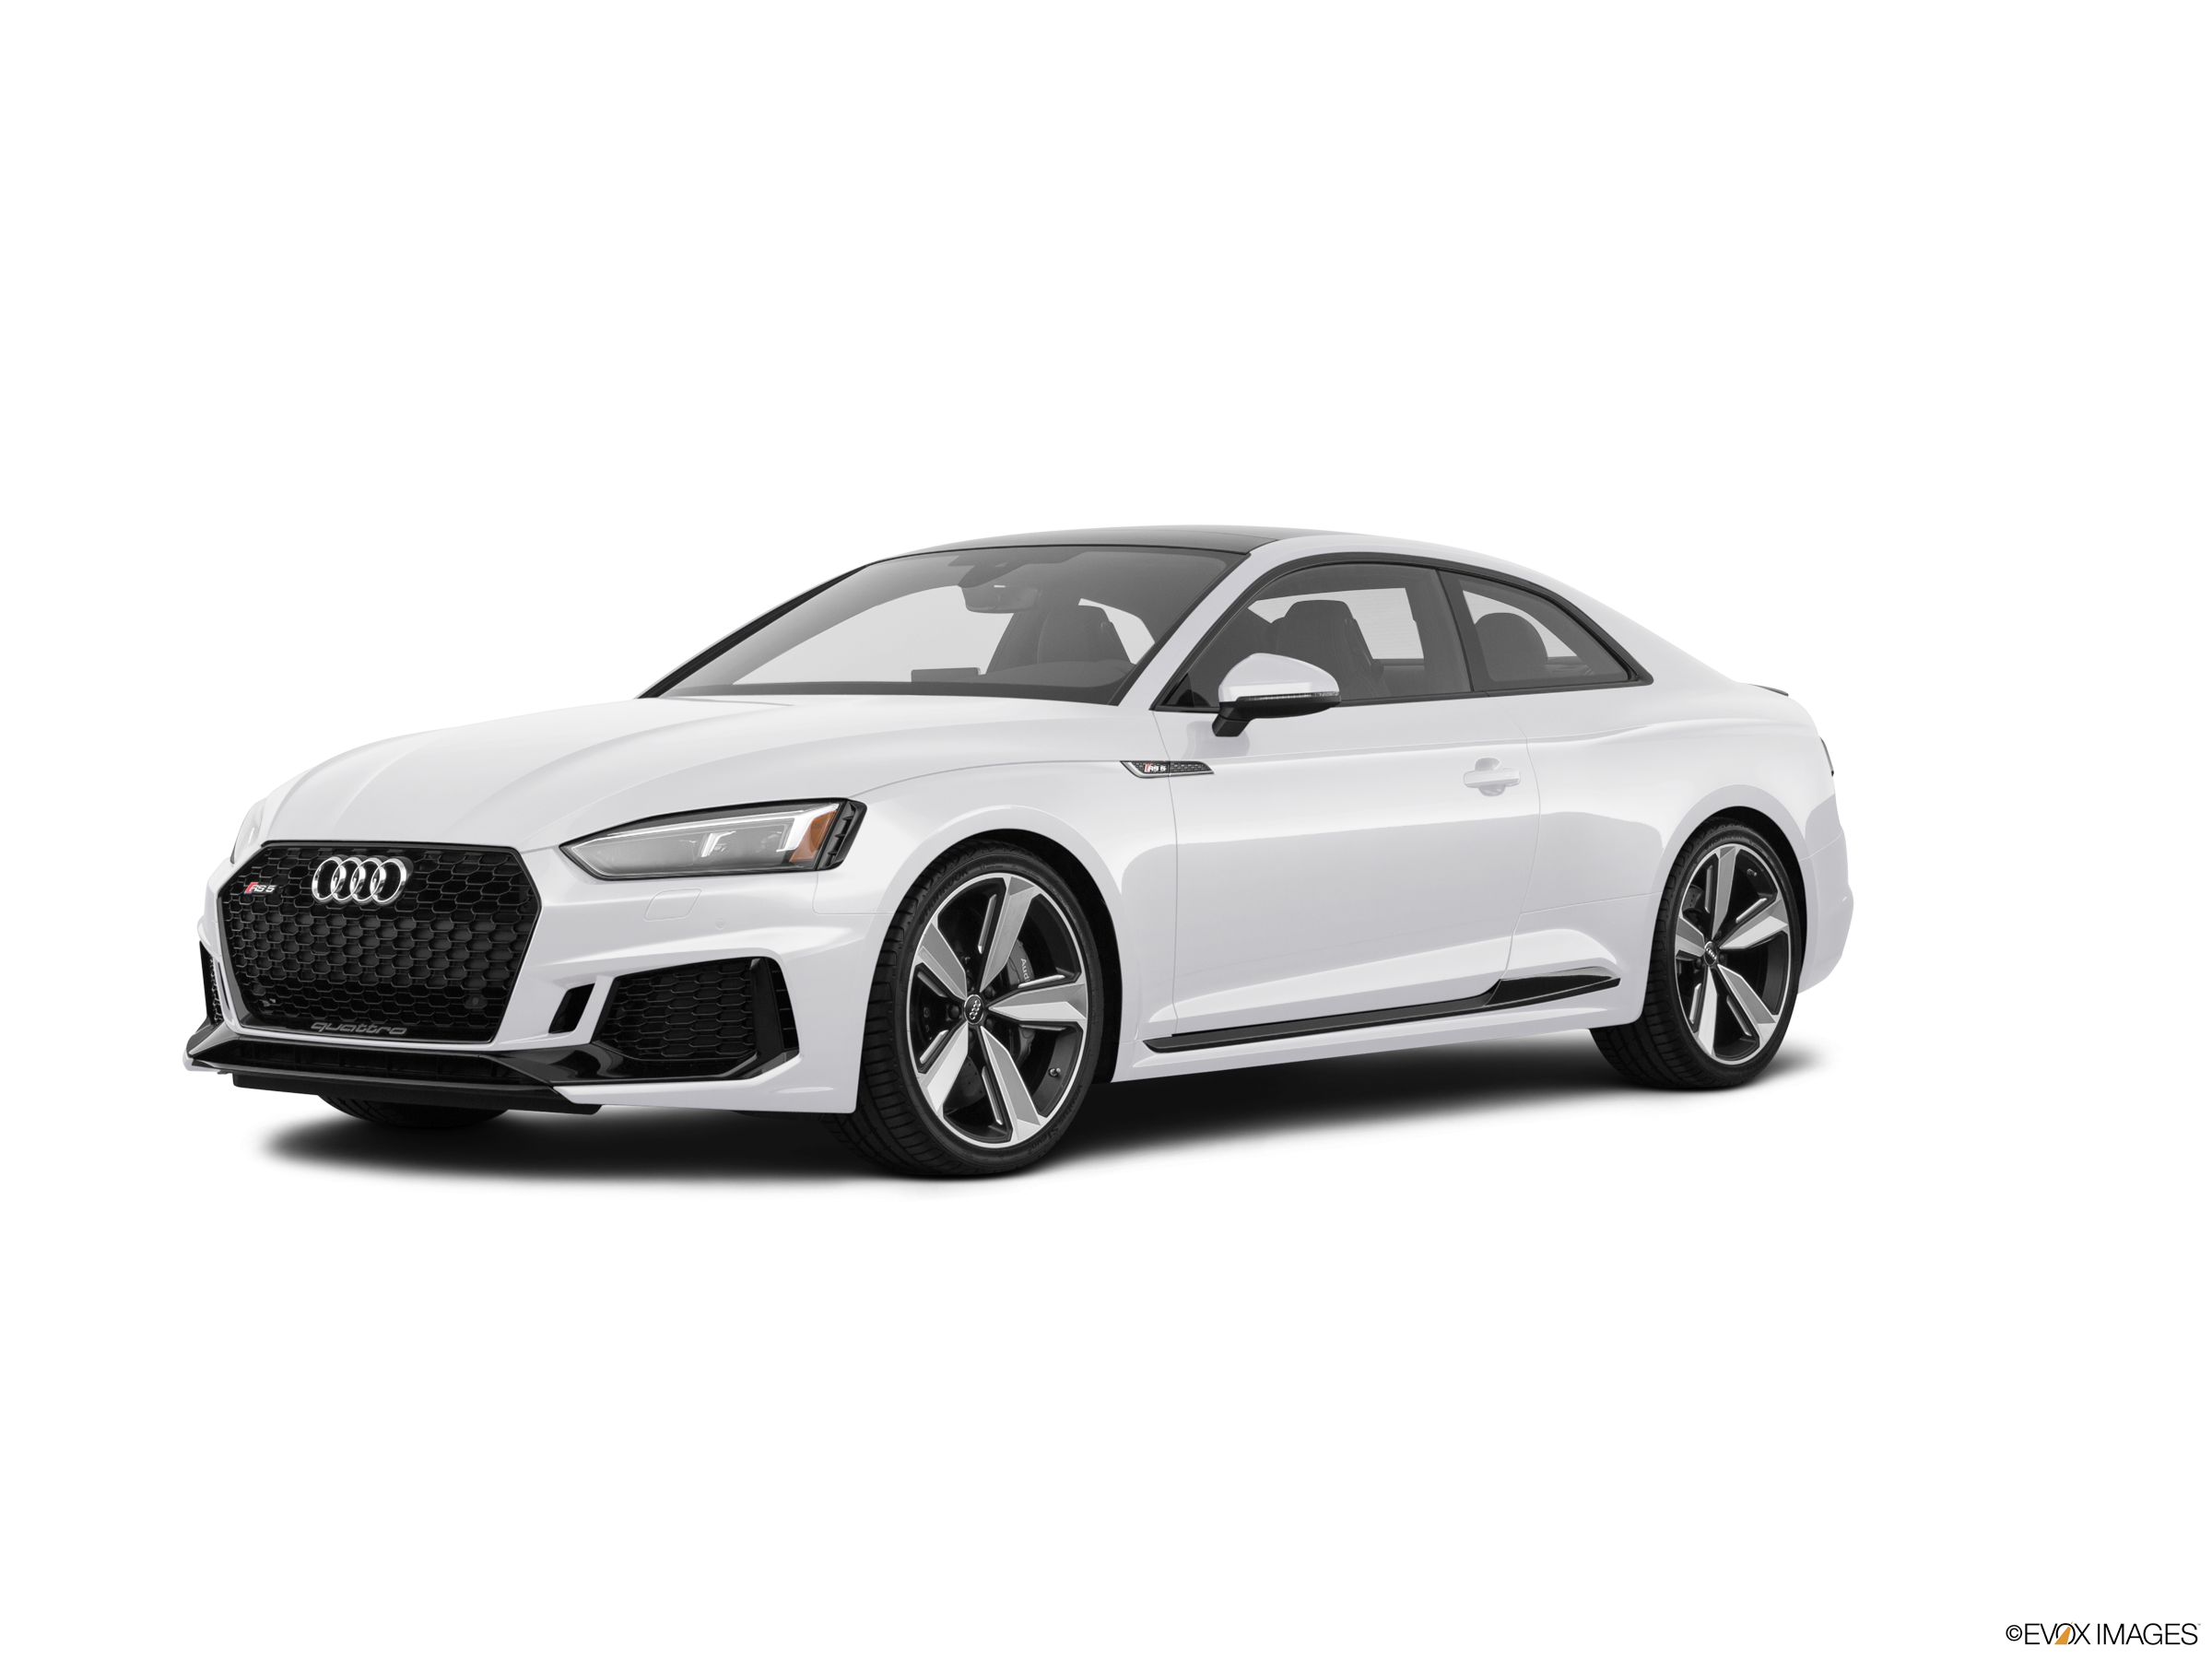 Top Expert Rated Luxury Vehicles of 2018 - 2018 Audi RS 5